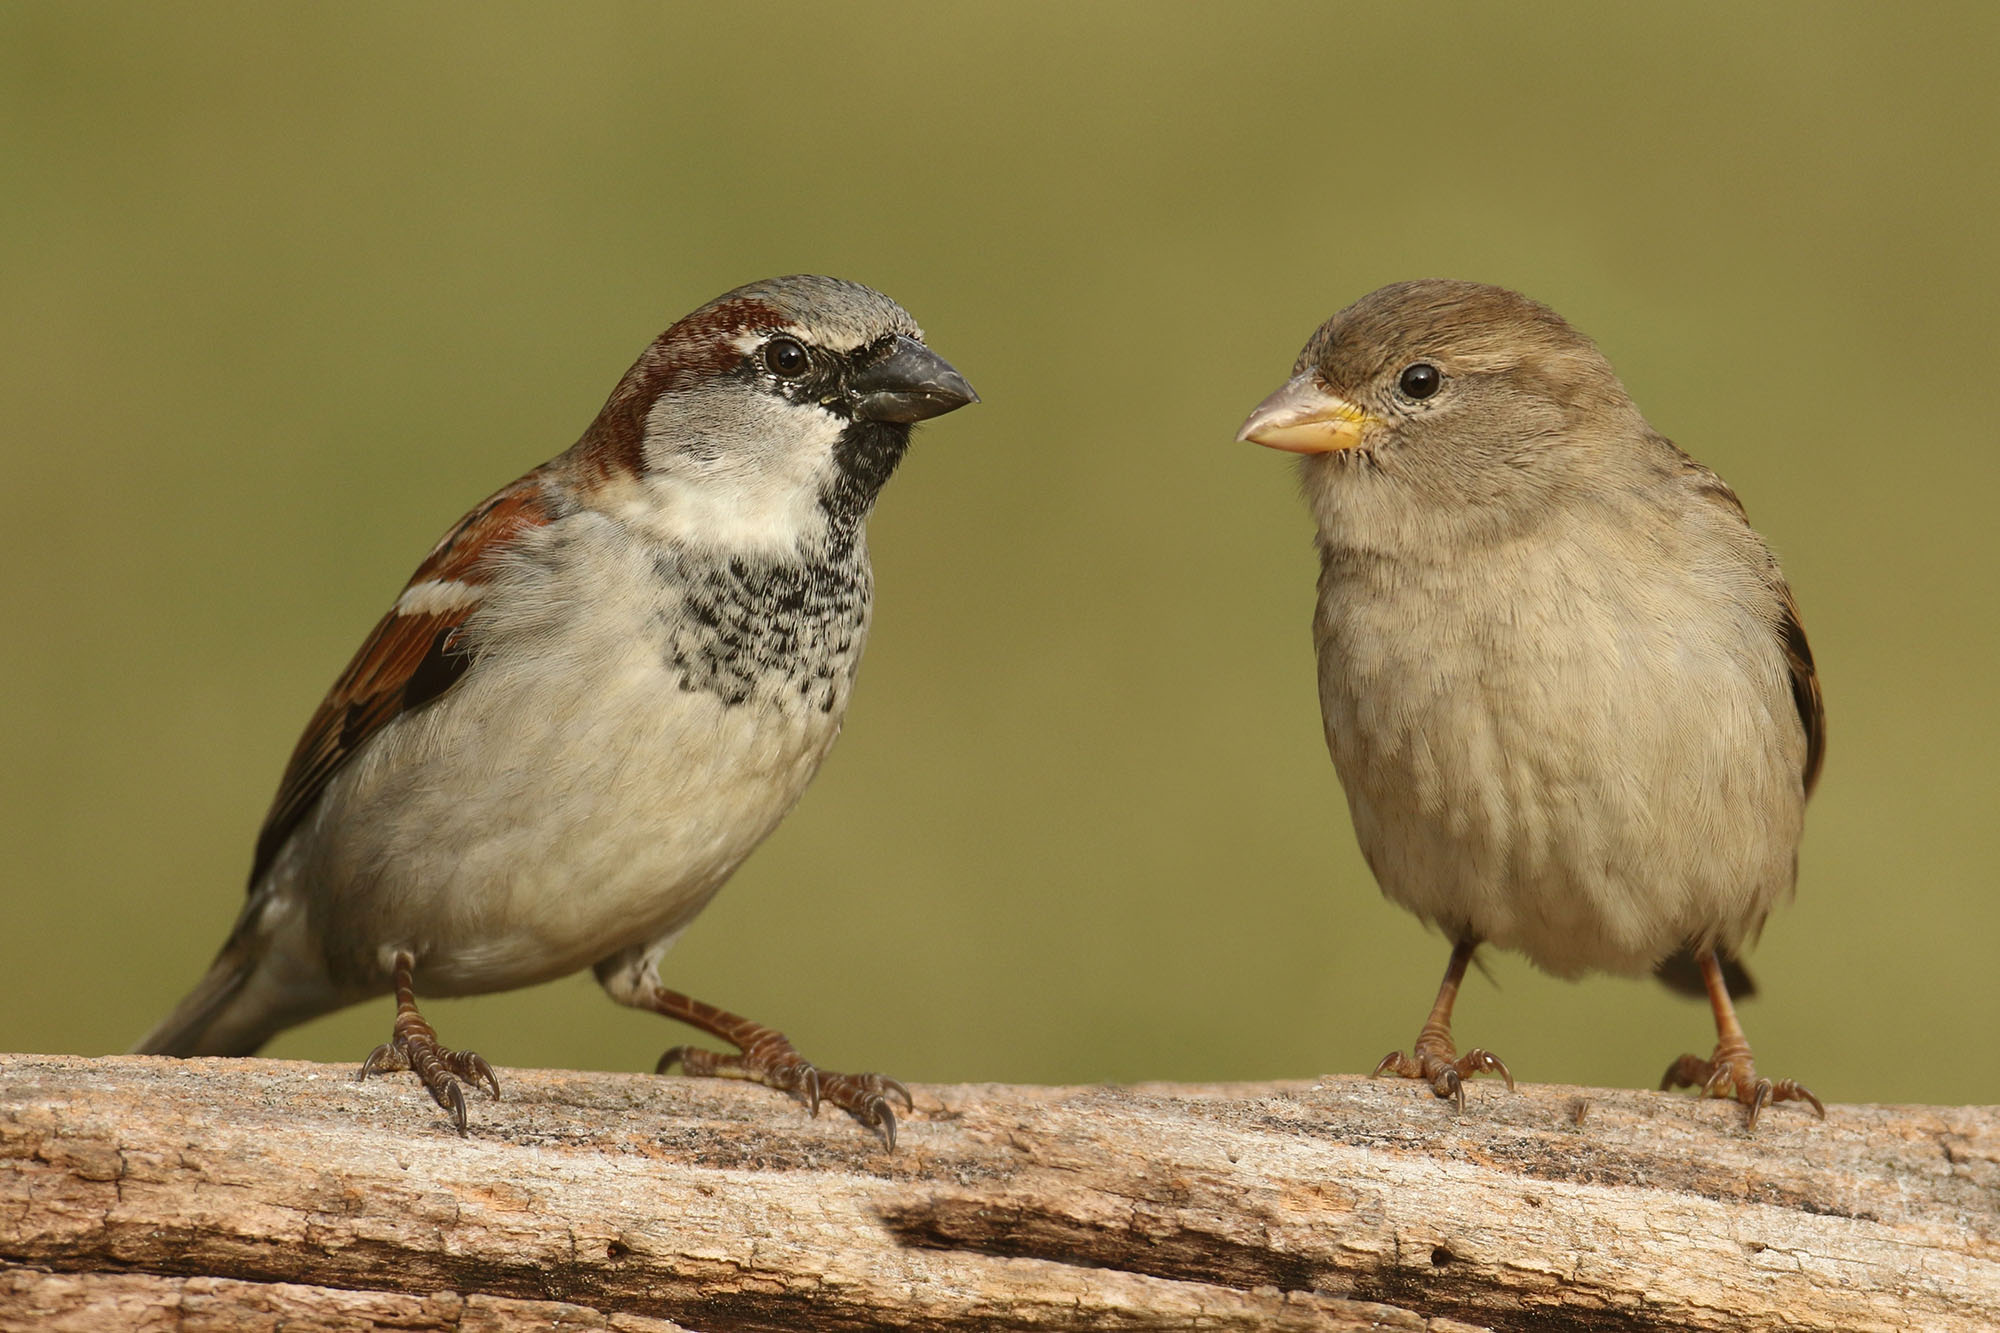 Male and female house sparrows